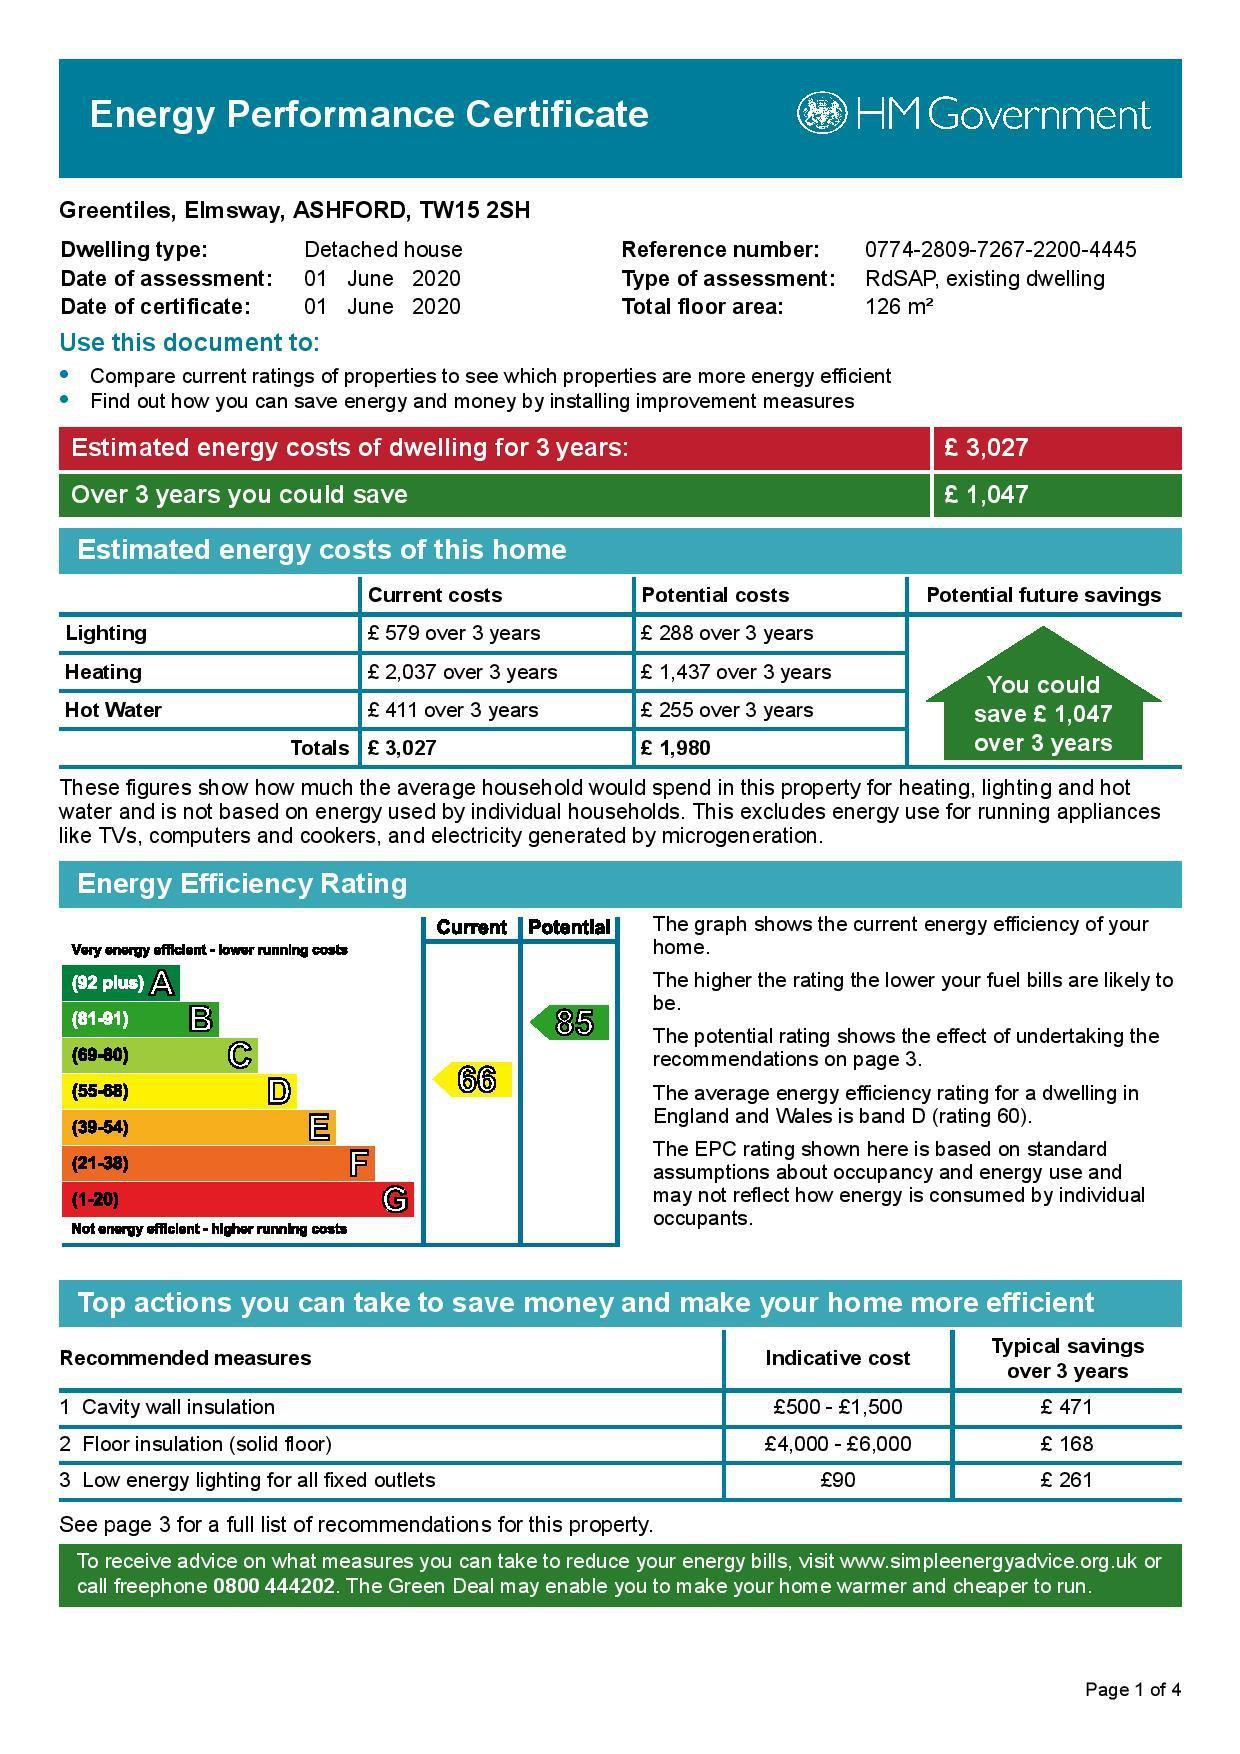 EPC Graph for Greentiles, Elmsway, Ashford, Middlesex TW15 2SH